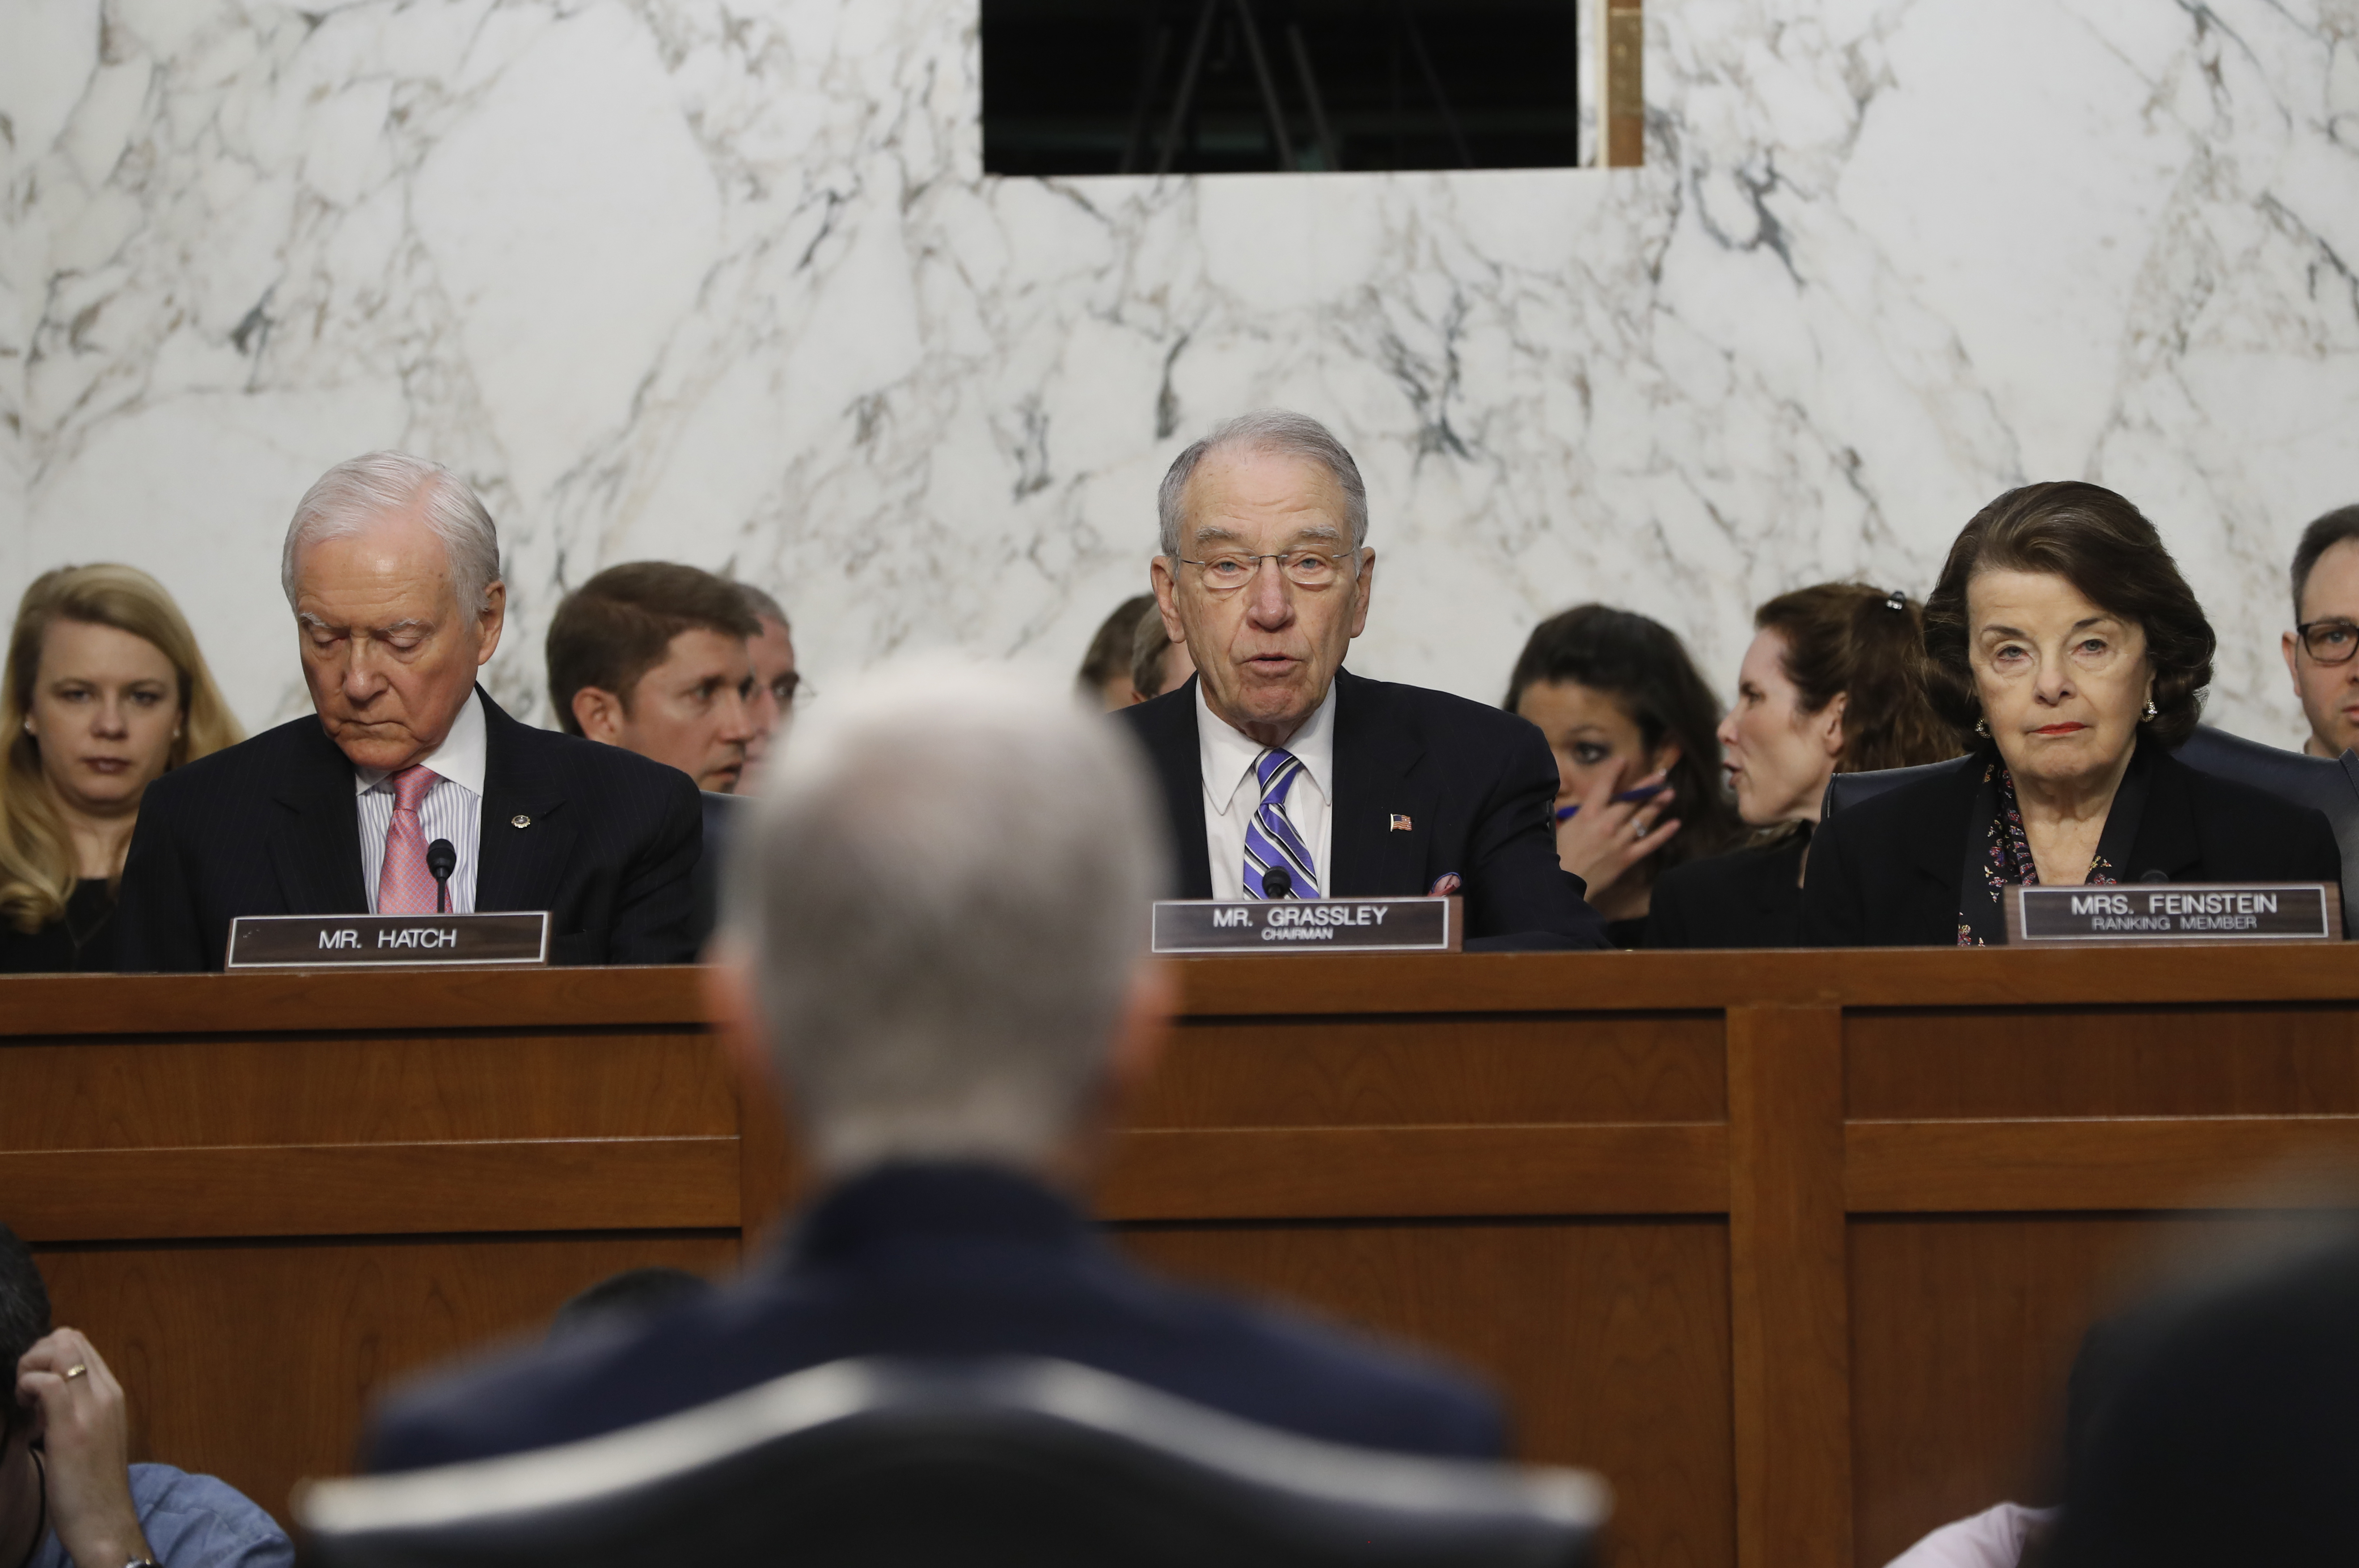 Supreme Court Justice nominee Neil Gorsuch, back to camera, listens on Capitol Hill in Washington, March 21, 2017, as Senate Judiciary Committee Chairman Sen. Charles Grassley, R-Iowa, flanked by the committee ranking member Sen. Dianne Feinstein, D-...